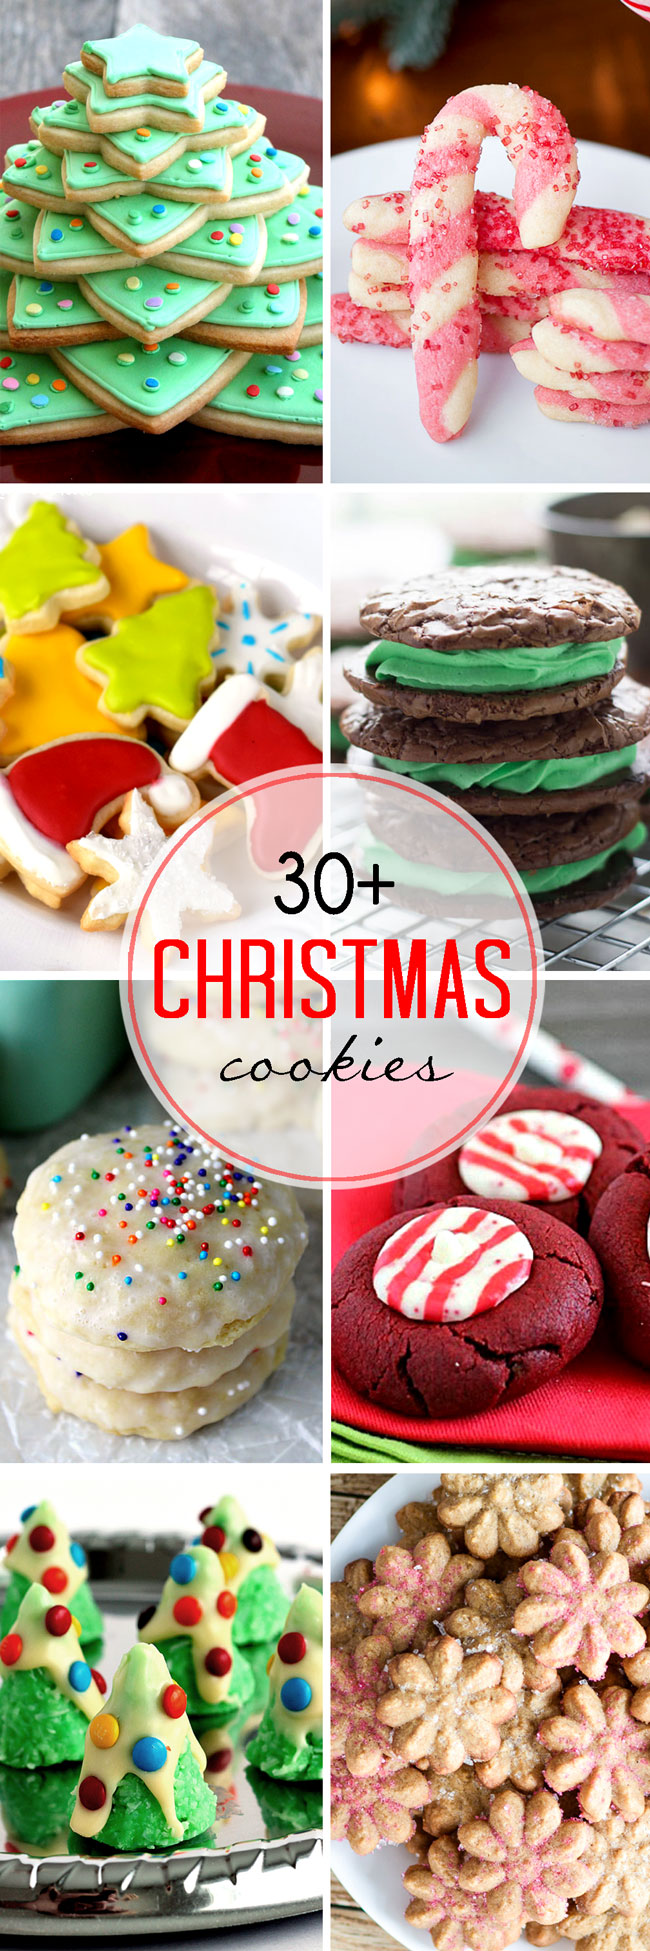 More Than 30 Christmas Cookie Recipes! | White Lights on Wednesday